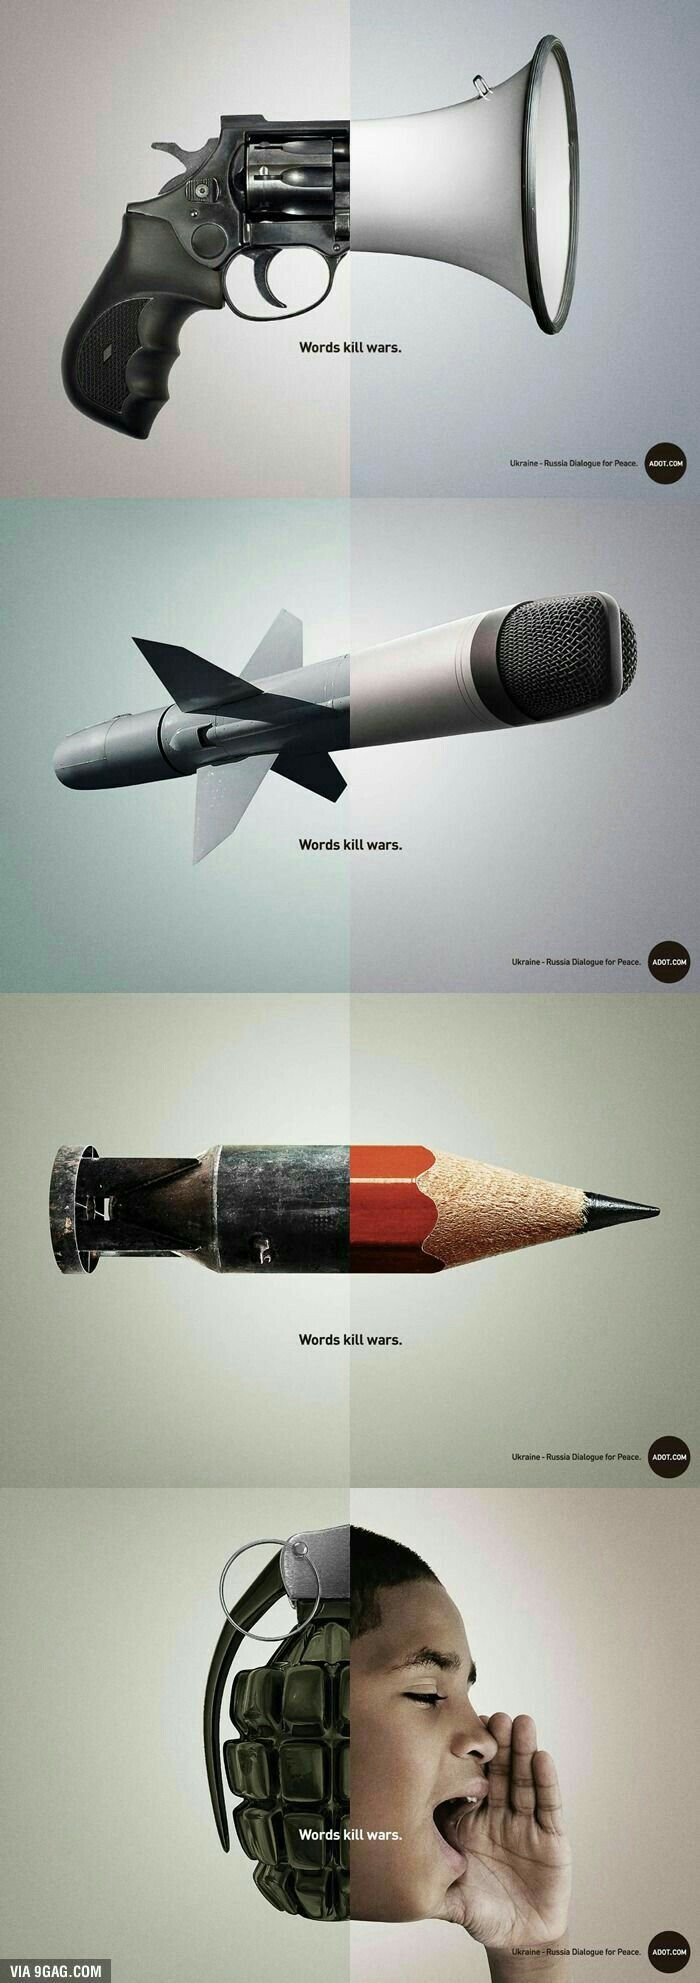 Words Kill Wars._